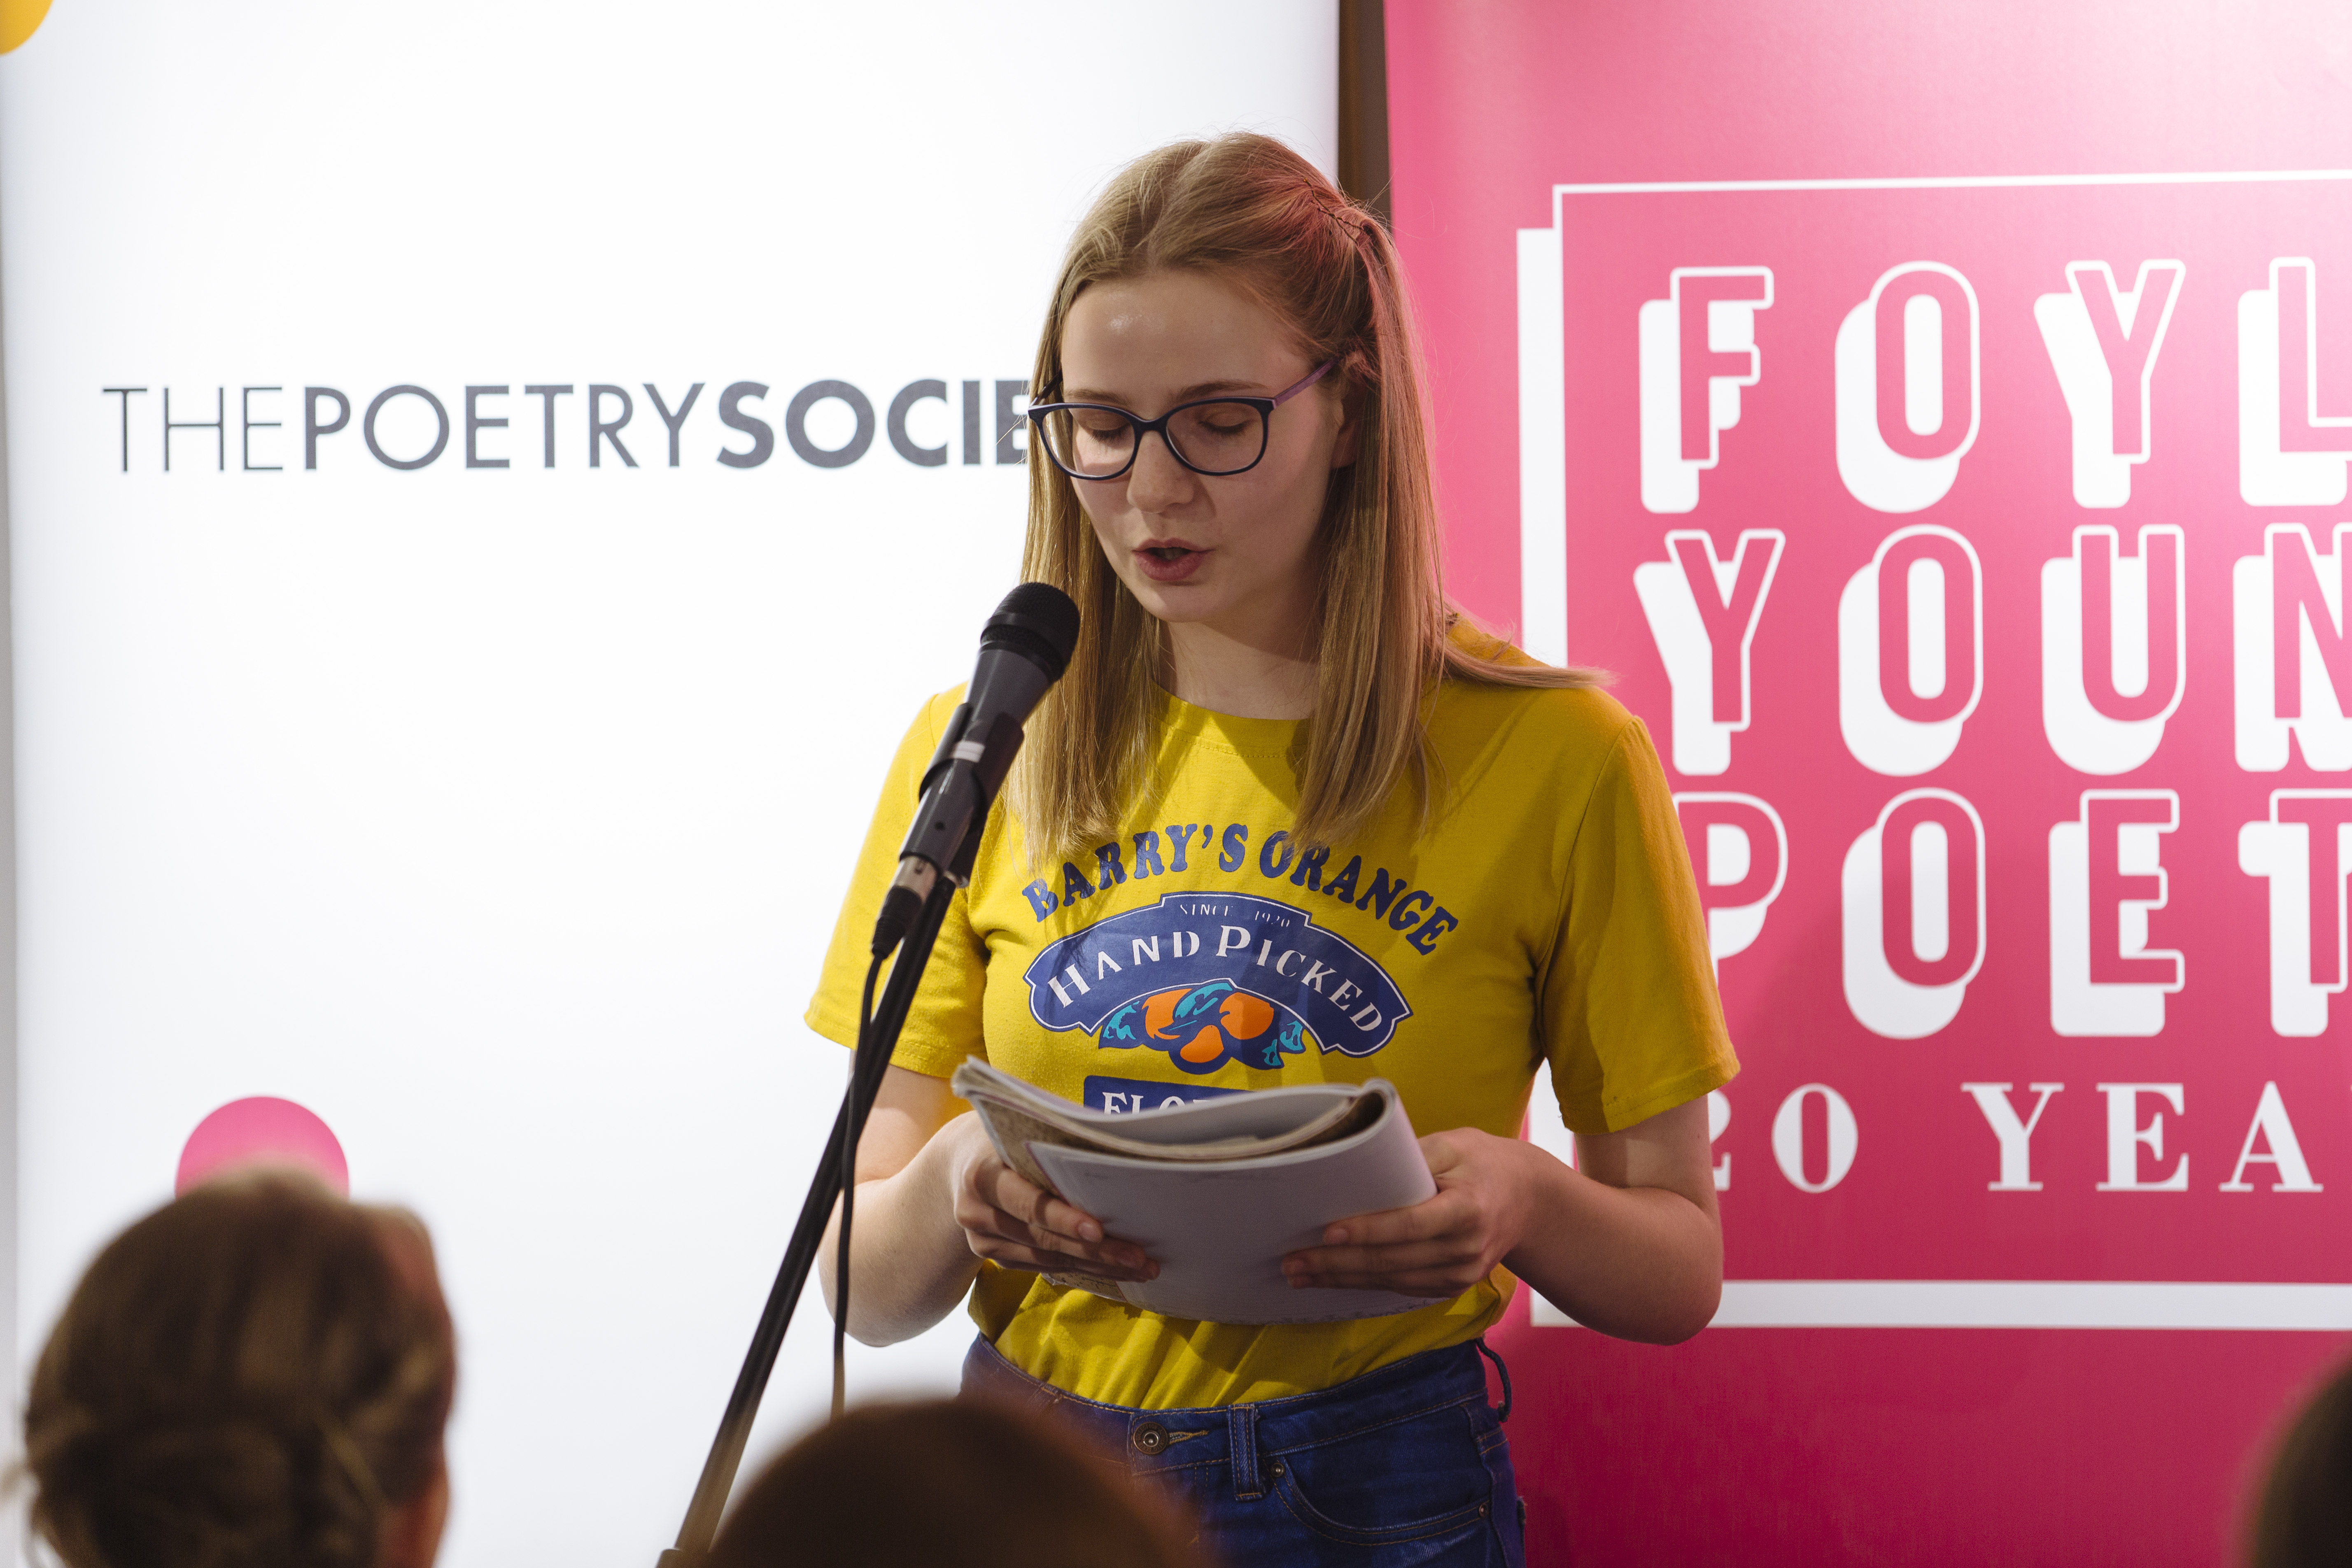 image of young woman reading in front of two Poetry Society and Foyle Young Poets banners